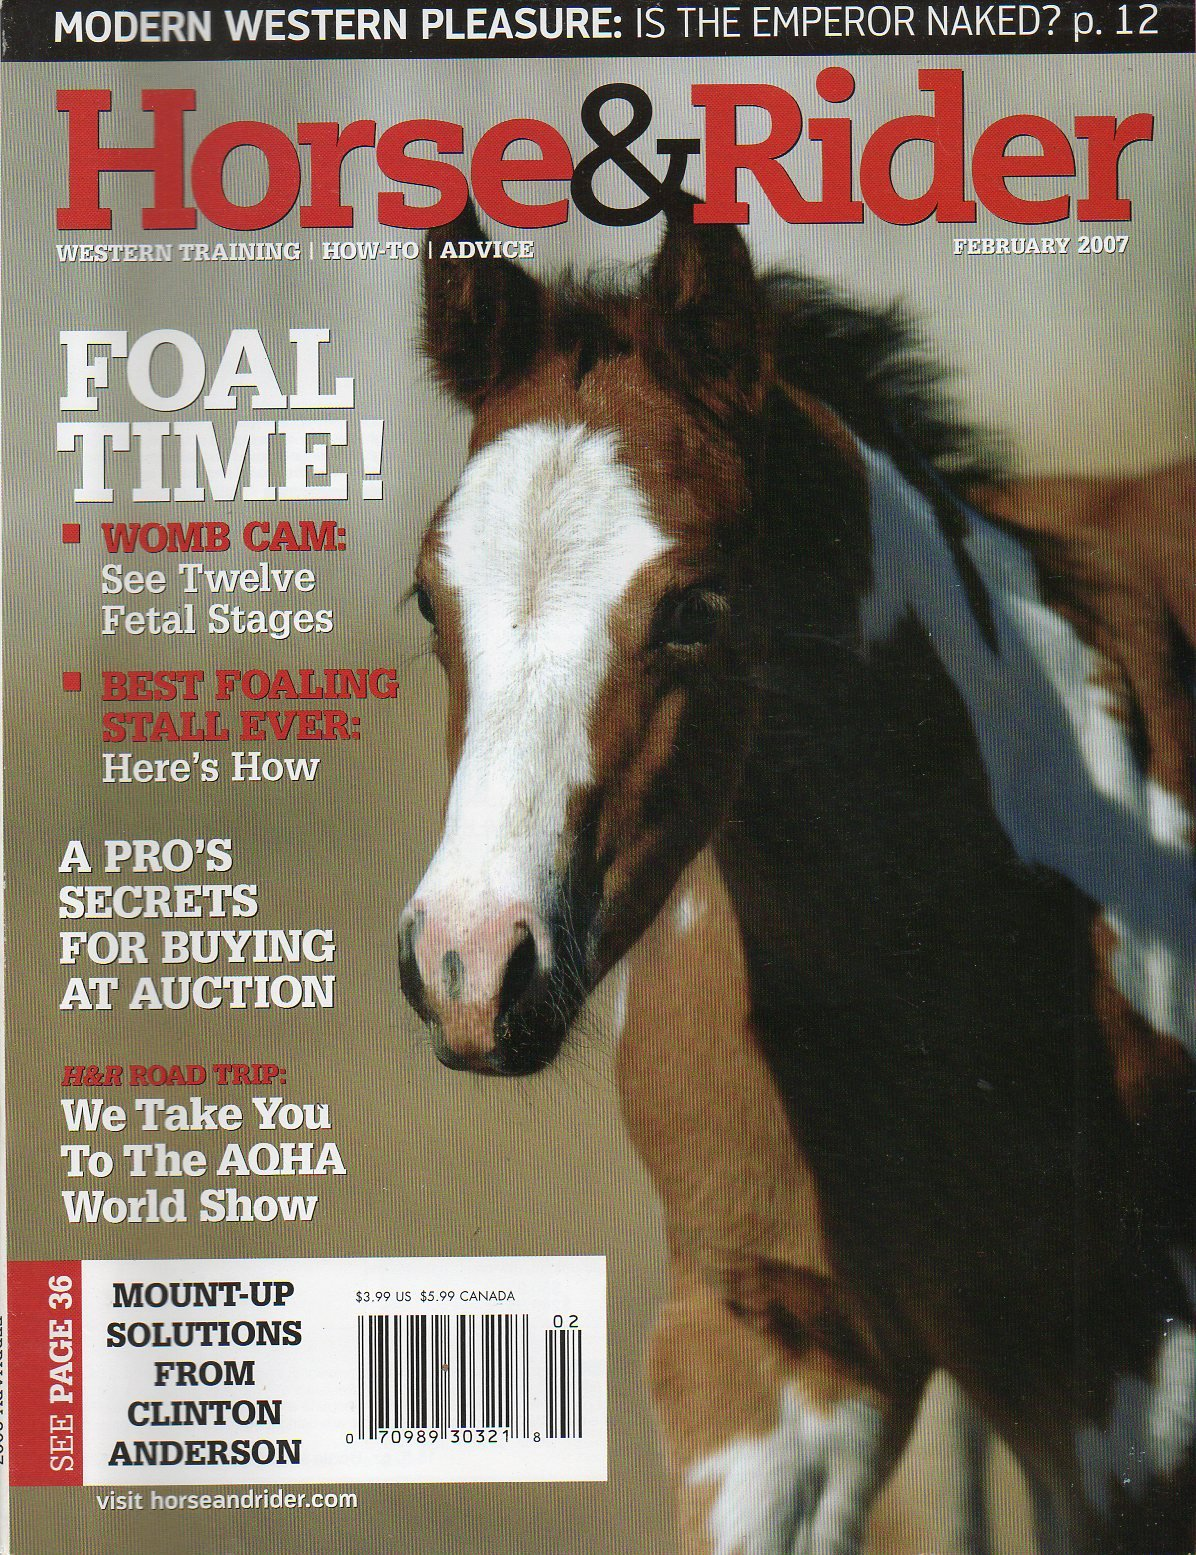 Horse & Rider Magazine February 2007 WOMB CAM: SEE TWELVE FETAL STAGES Foal Time BEST FOALING STALL EVER A Pro's Secrets For Buying At Auction ebook